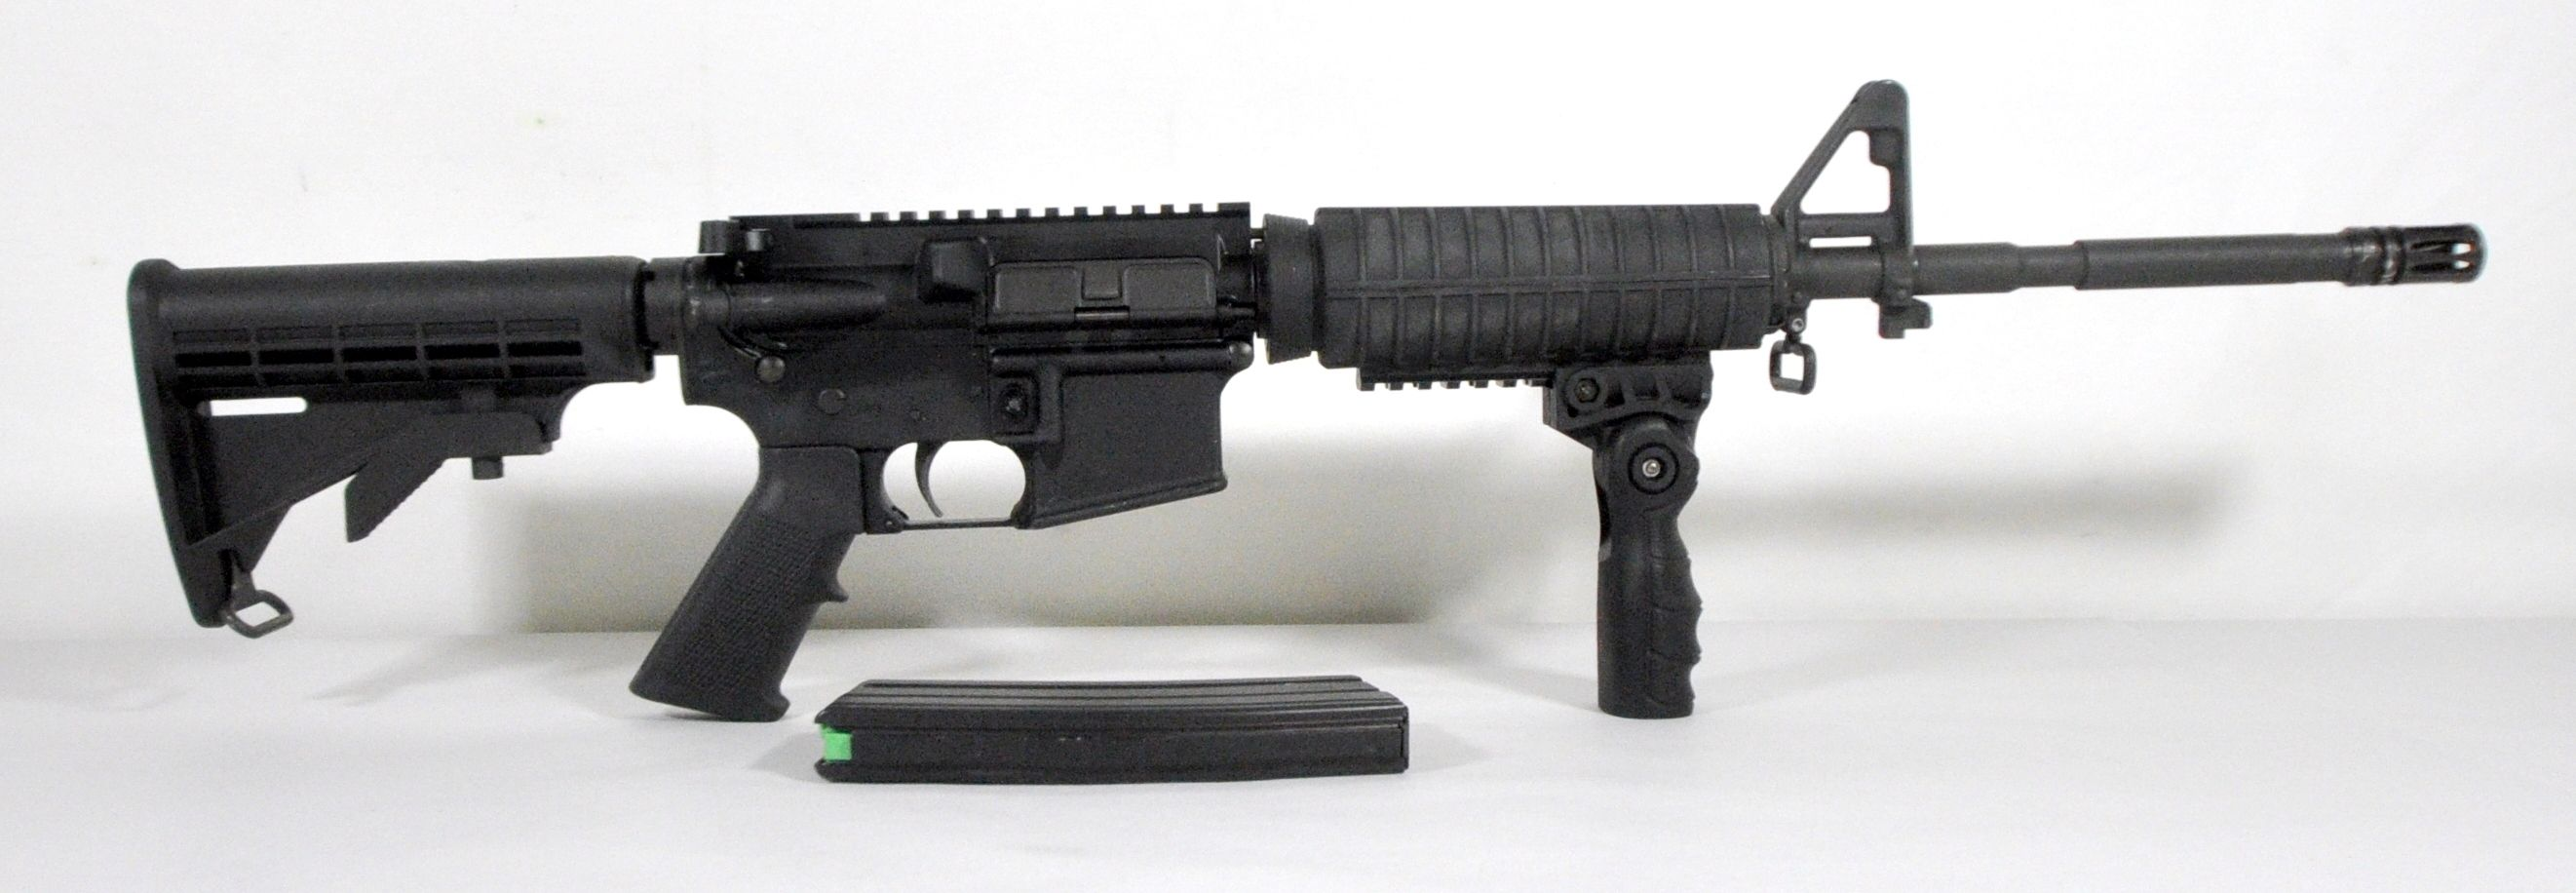 DelTon DTI Echo 316 Carbine 5.56mm. The DTI series from